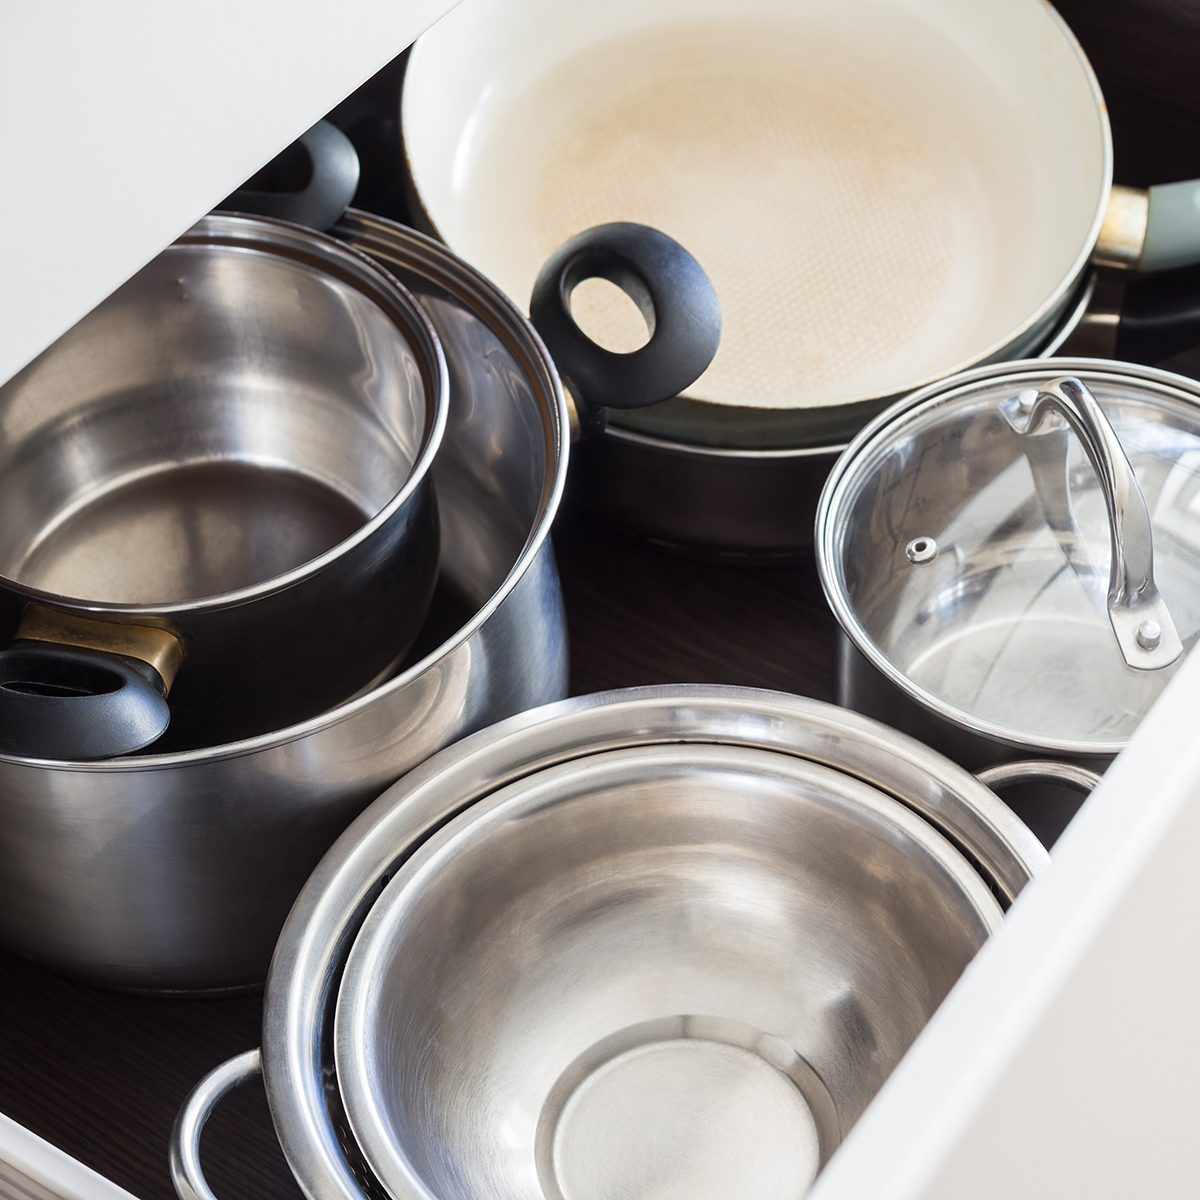 Open drawer of cabinet with steel pots and pans and bowl.